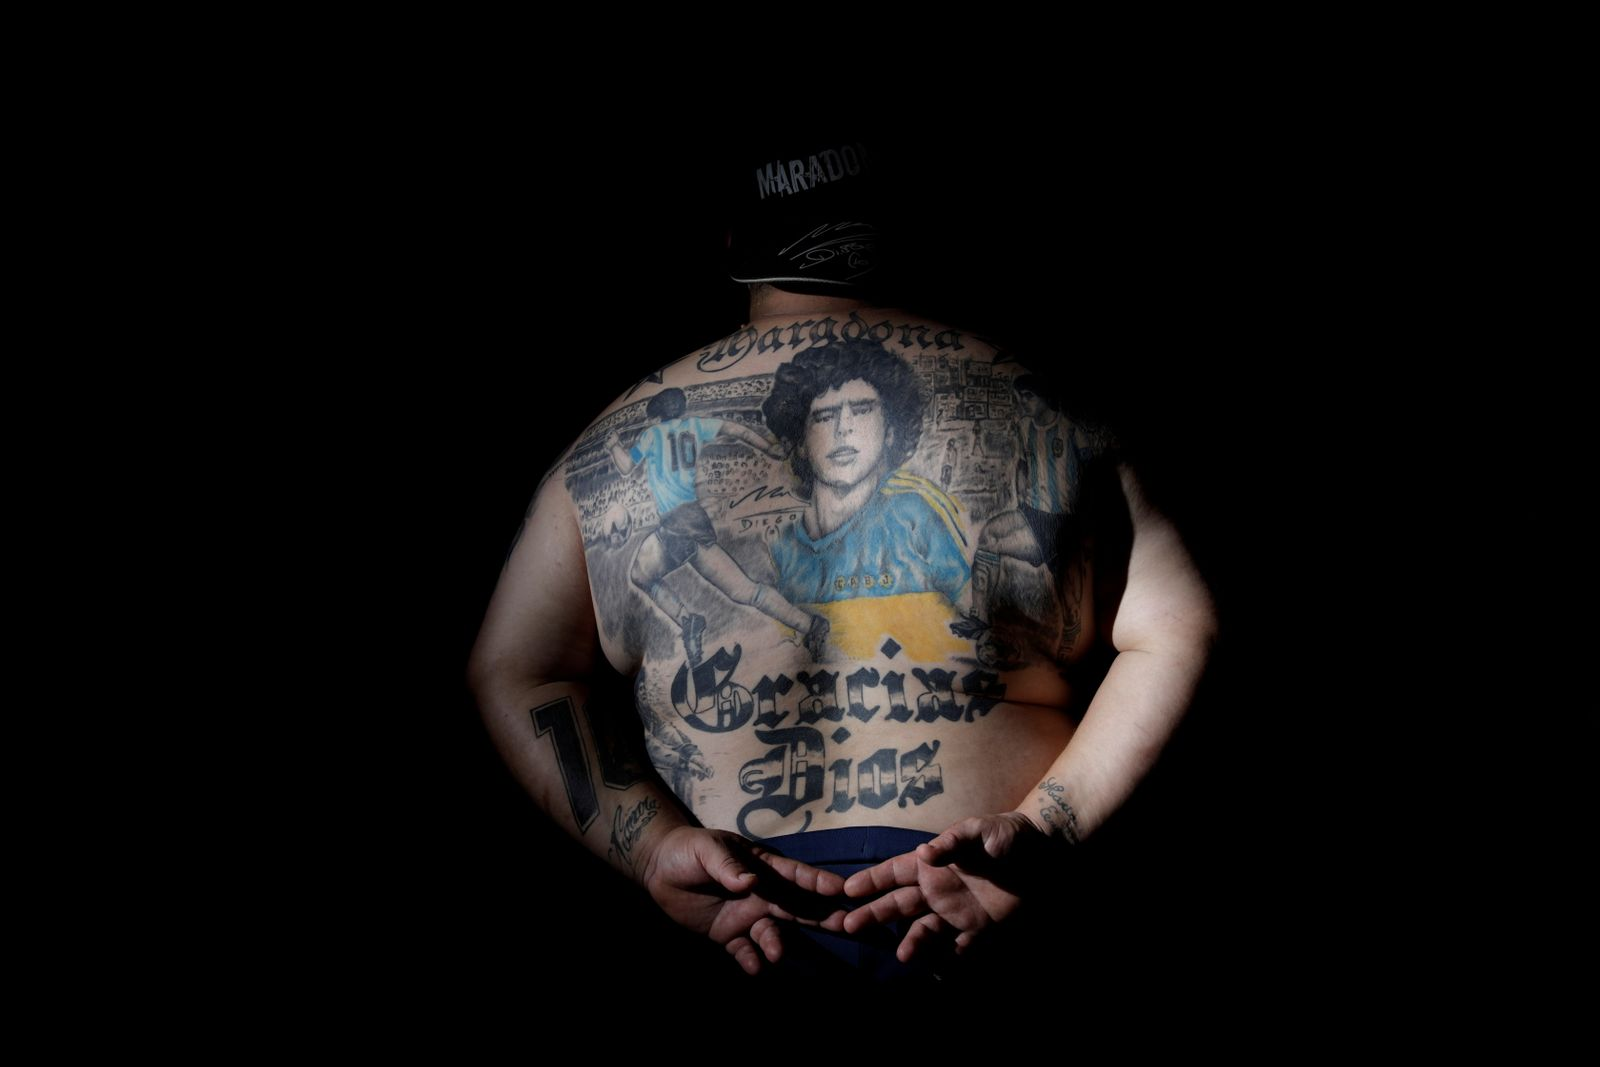 The Wider Image: Argentines celebrate 'eternal love' for Maradona with tattoos